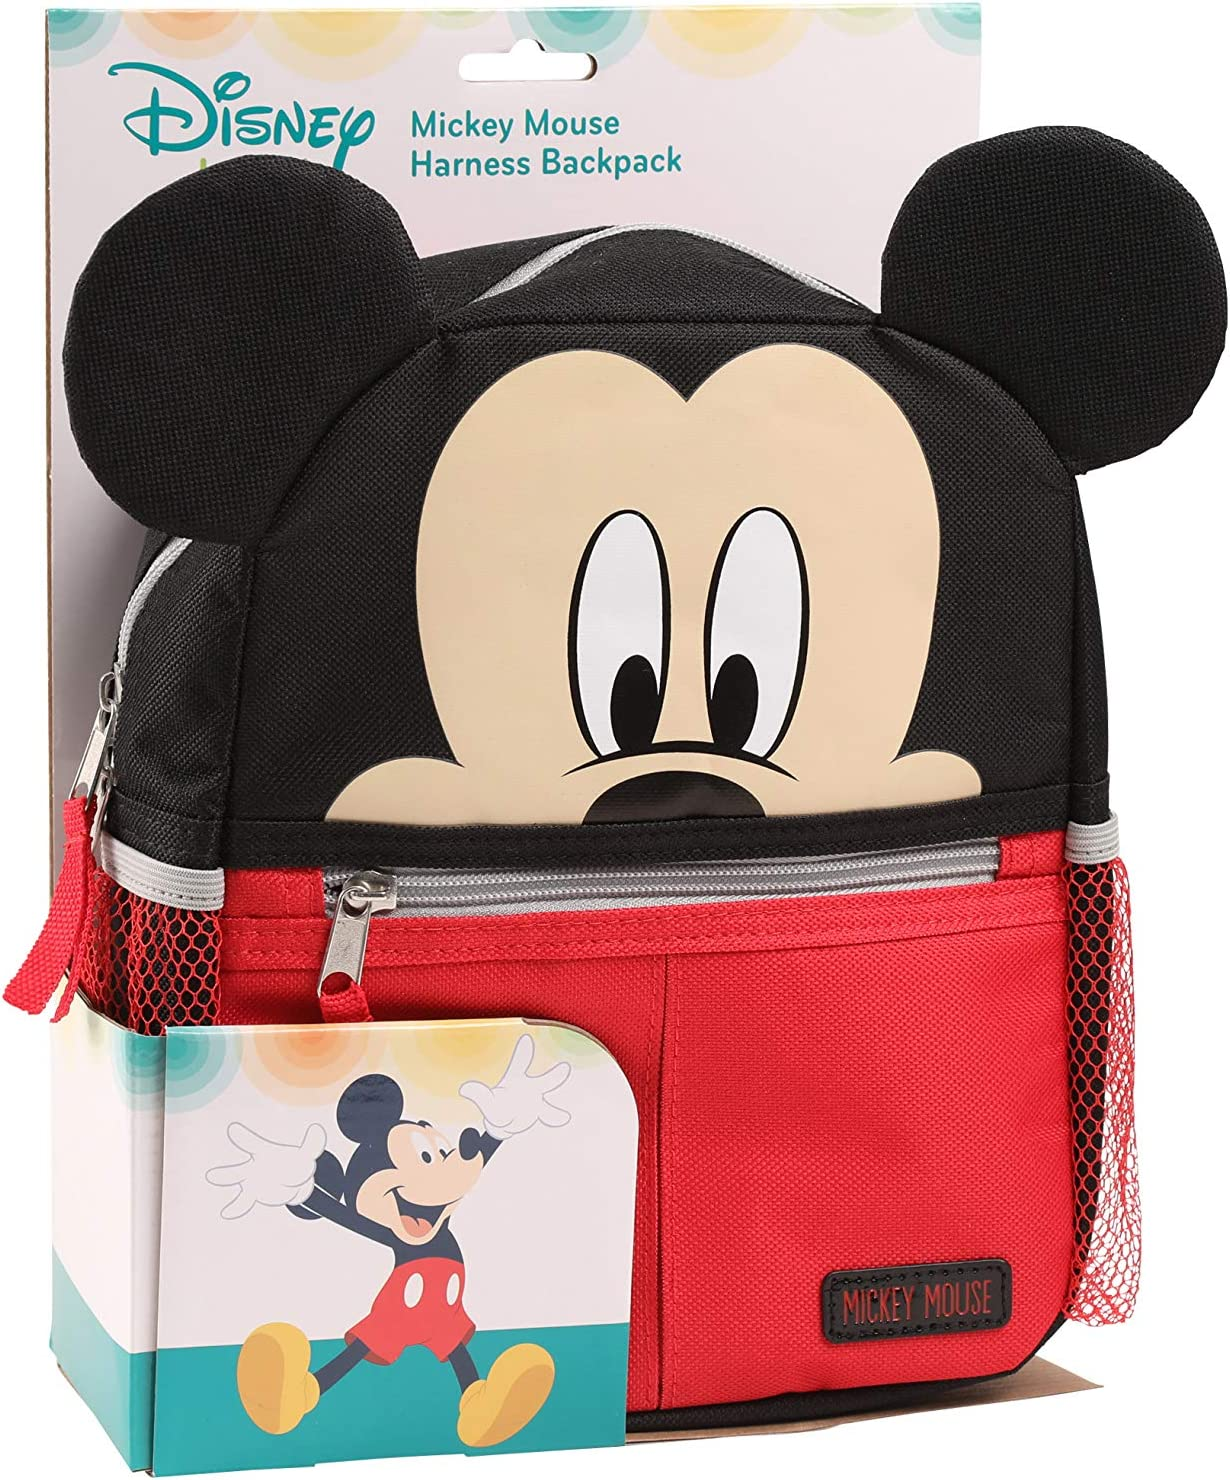 Disney Mickey Mouse Mini Backpack with Safety Harness Straps For Toddlers